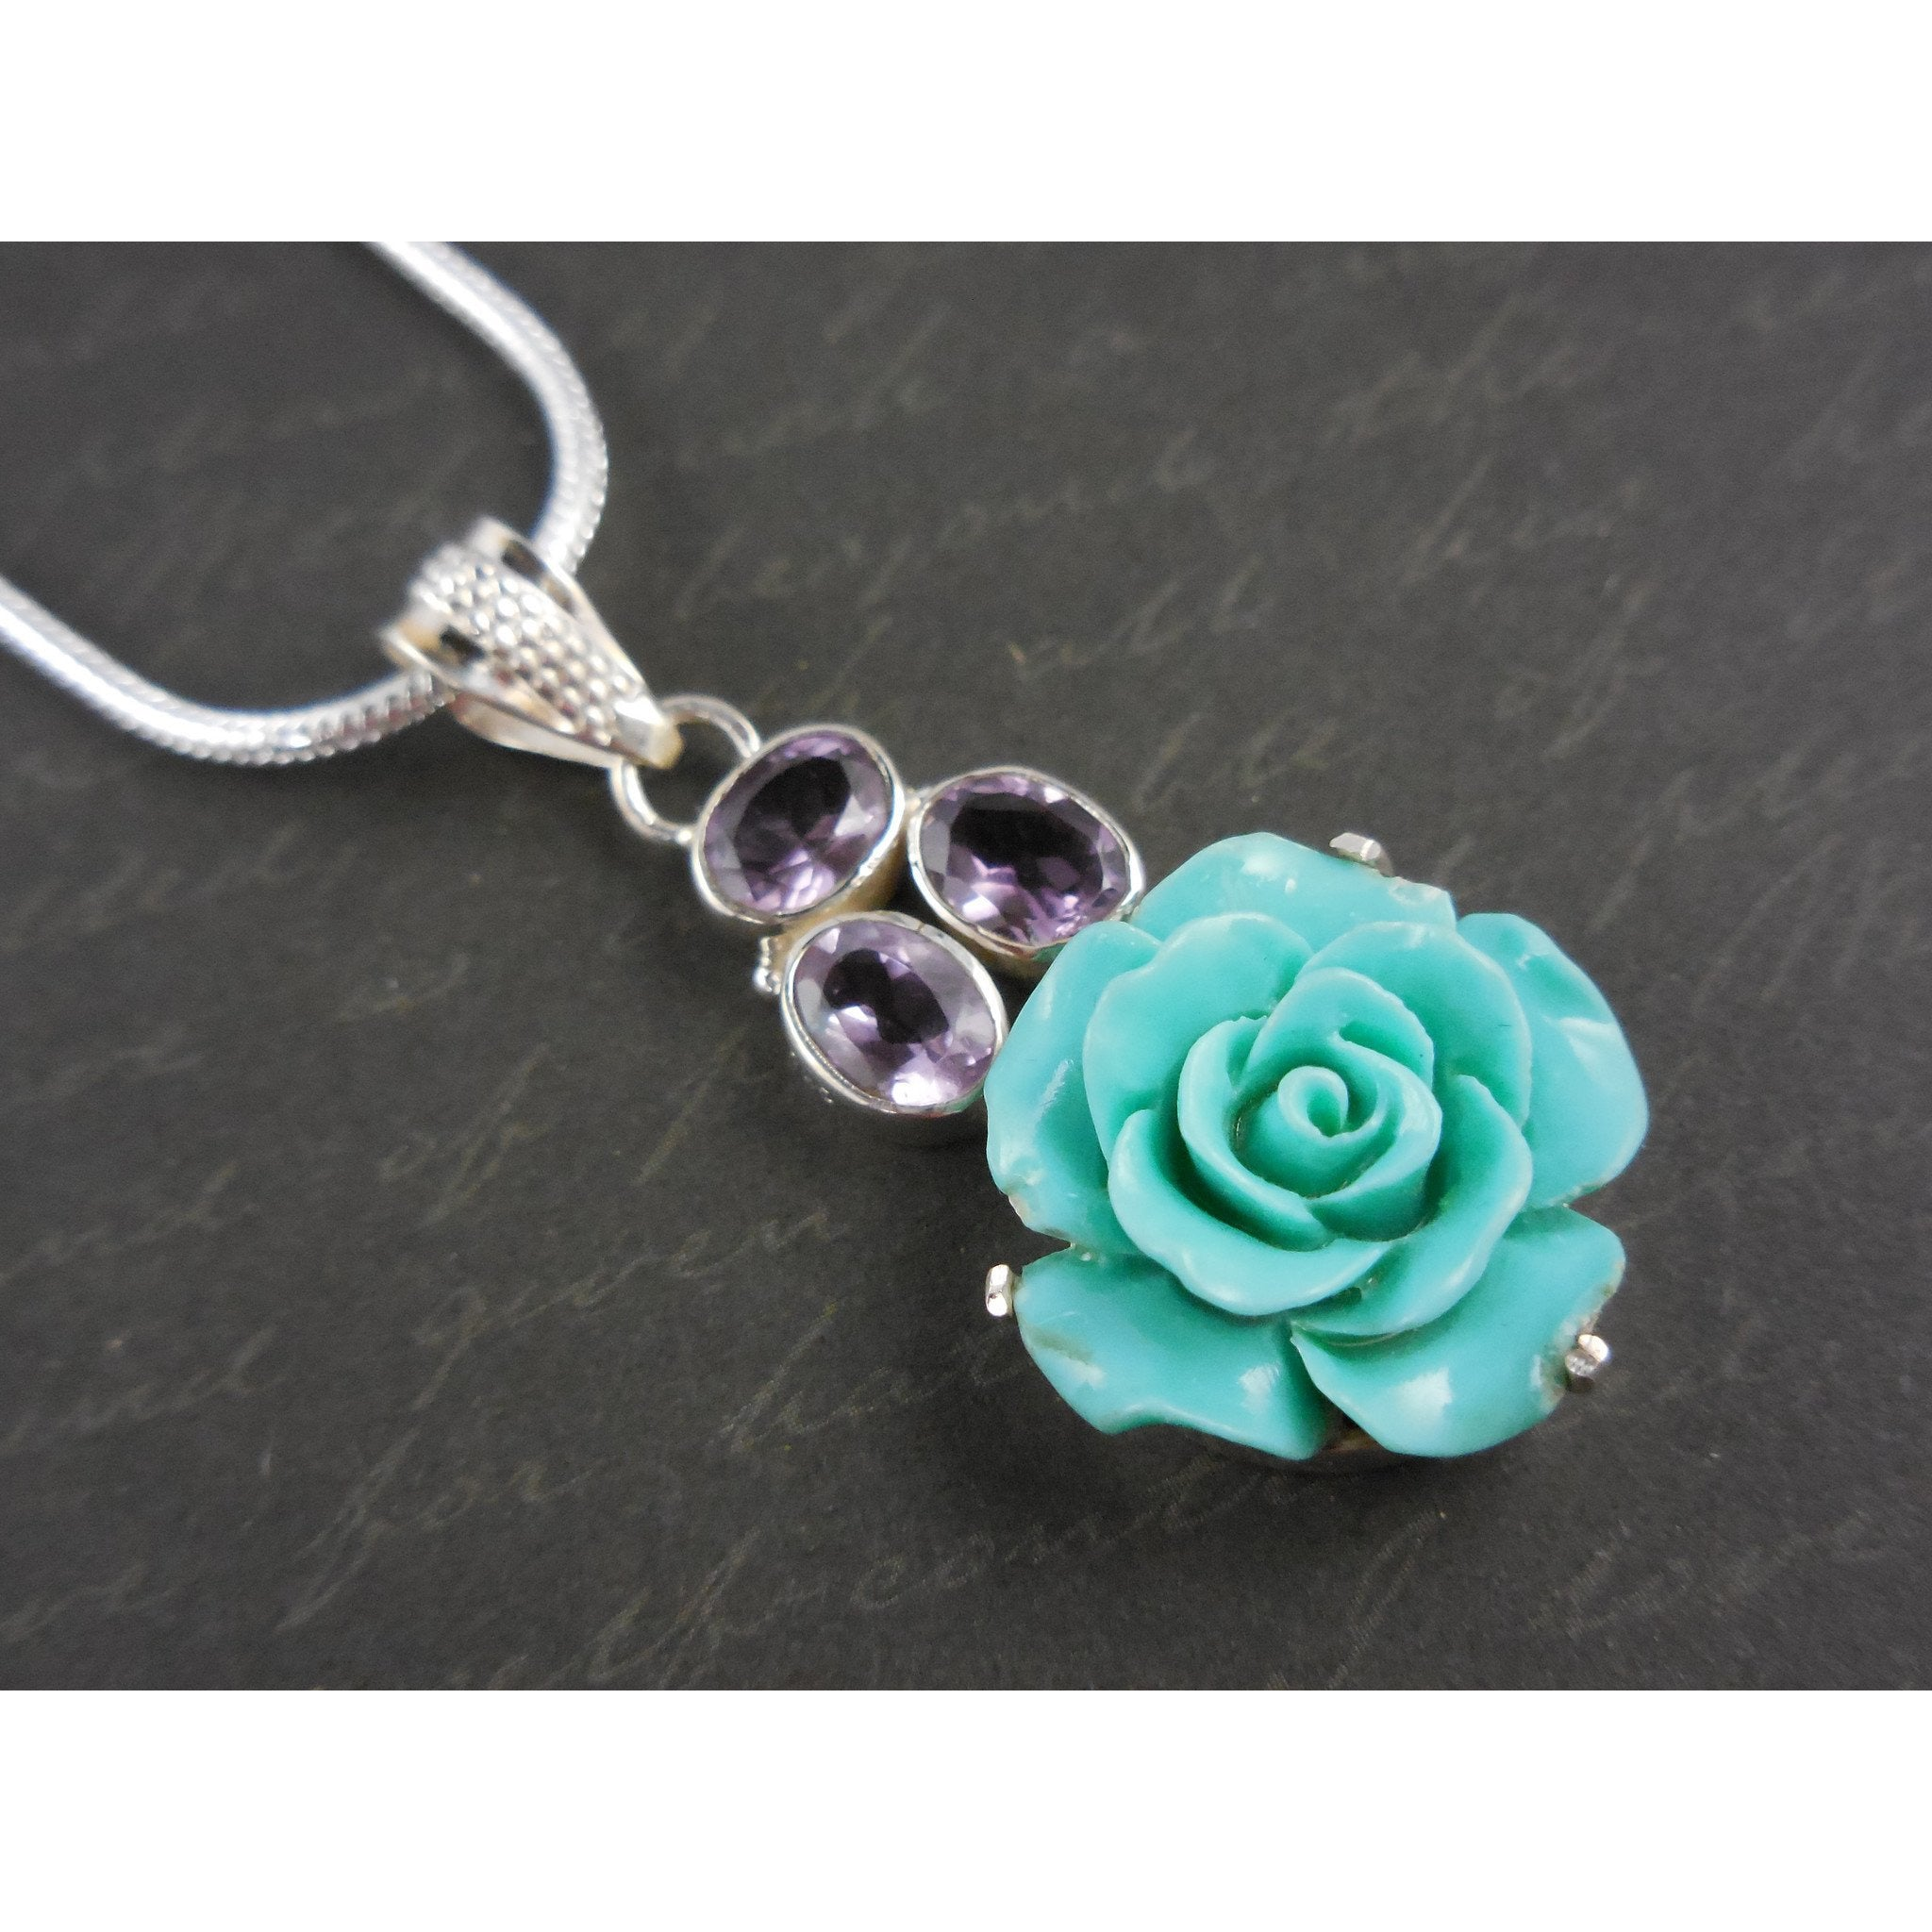 Amethyst Gemstone & Ceramic Floral Sterling Silver Necklace